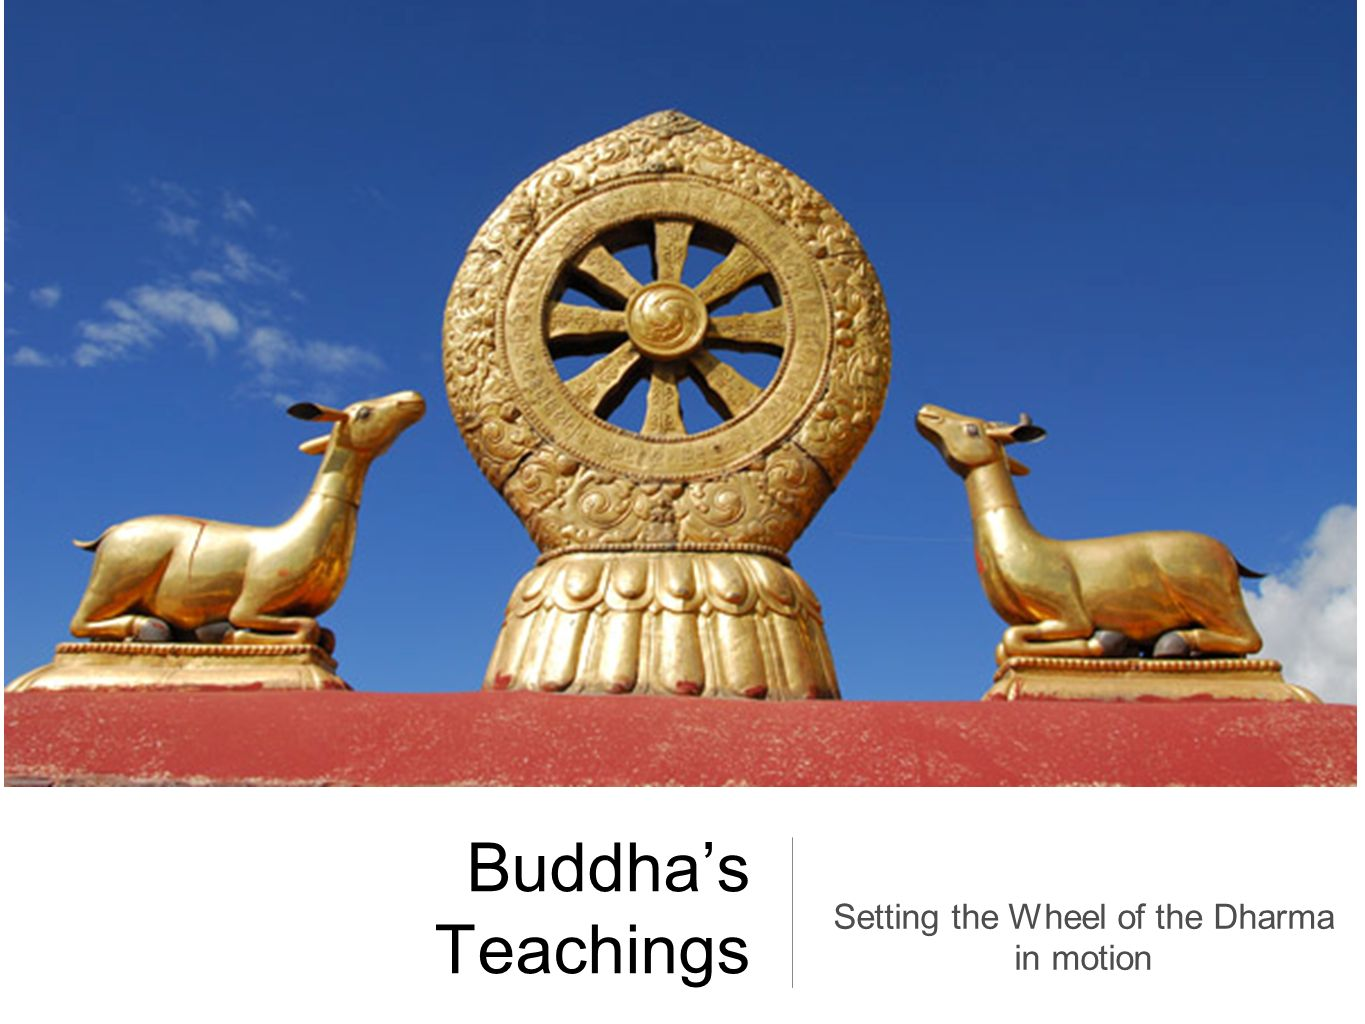 Setting the Wheel of the Dharma in motion